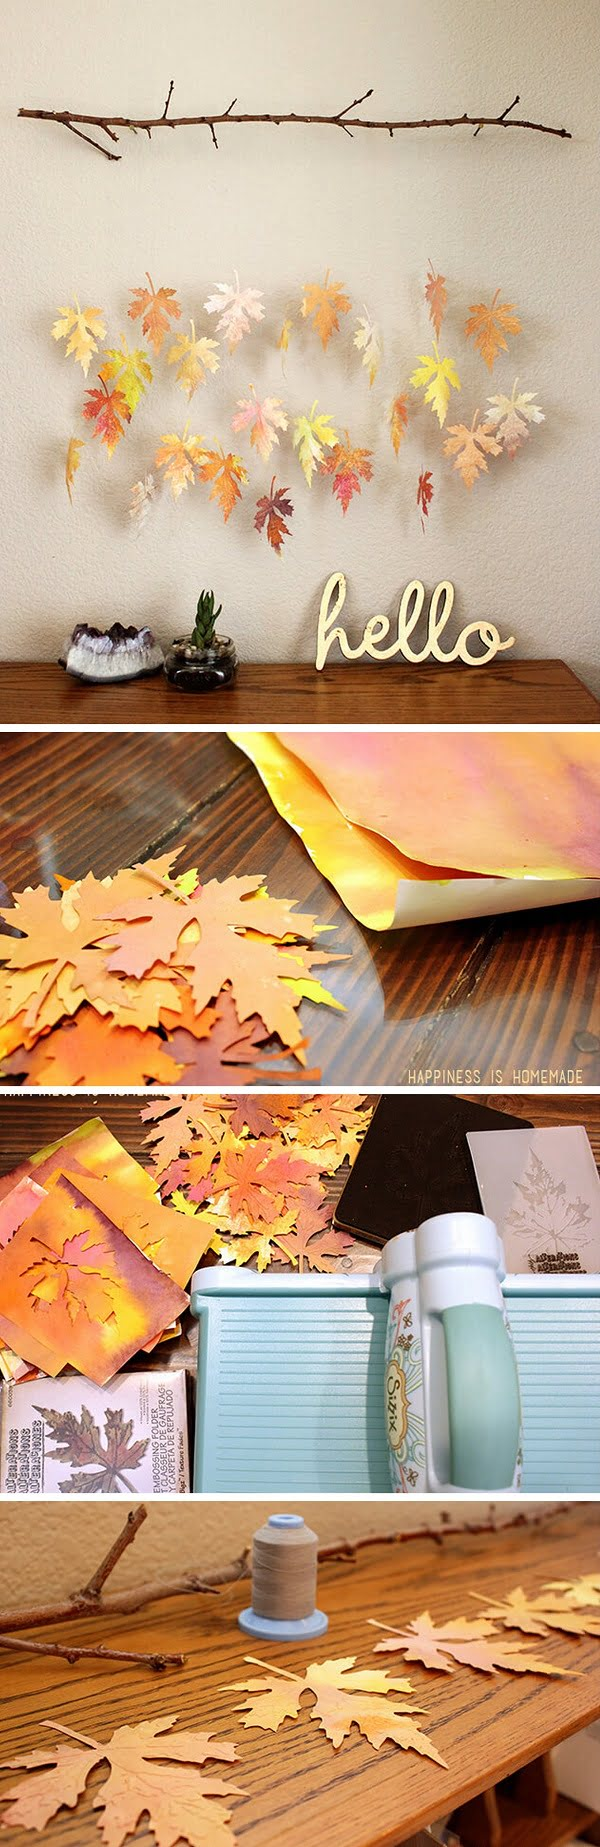 Check out the tutorial how to make a DIY faux fall leaf garland from paper